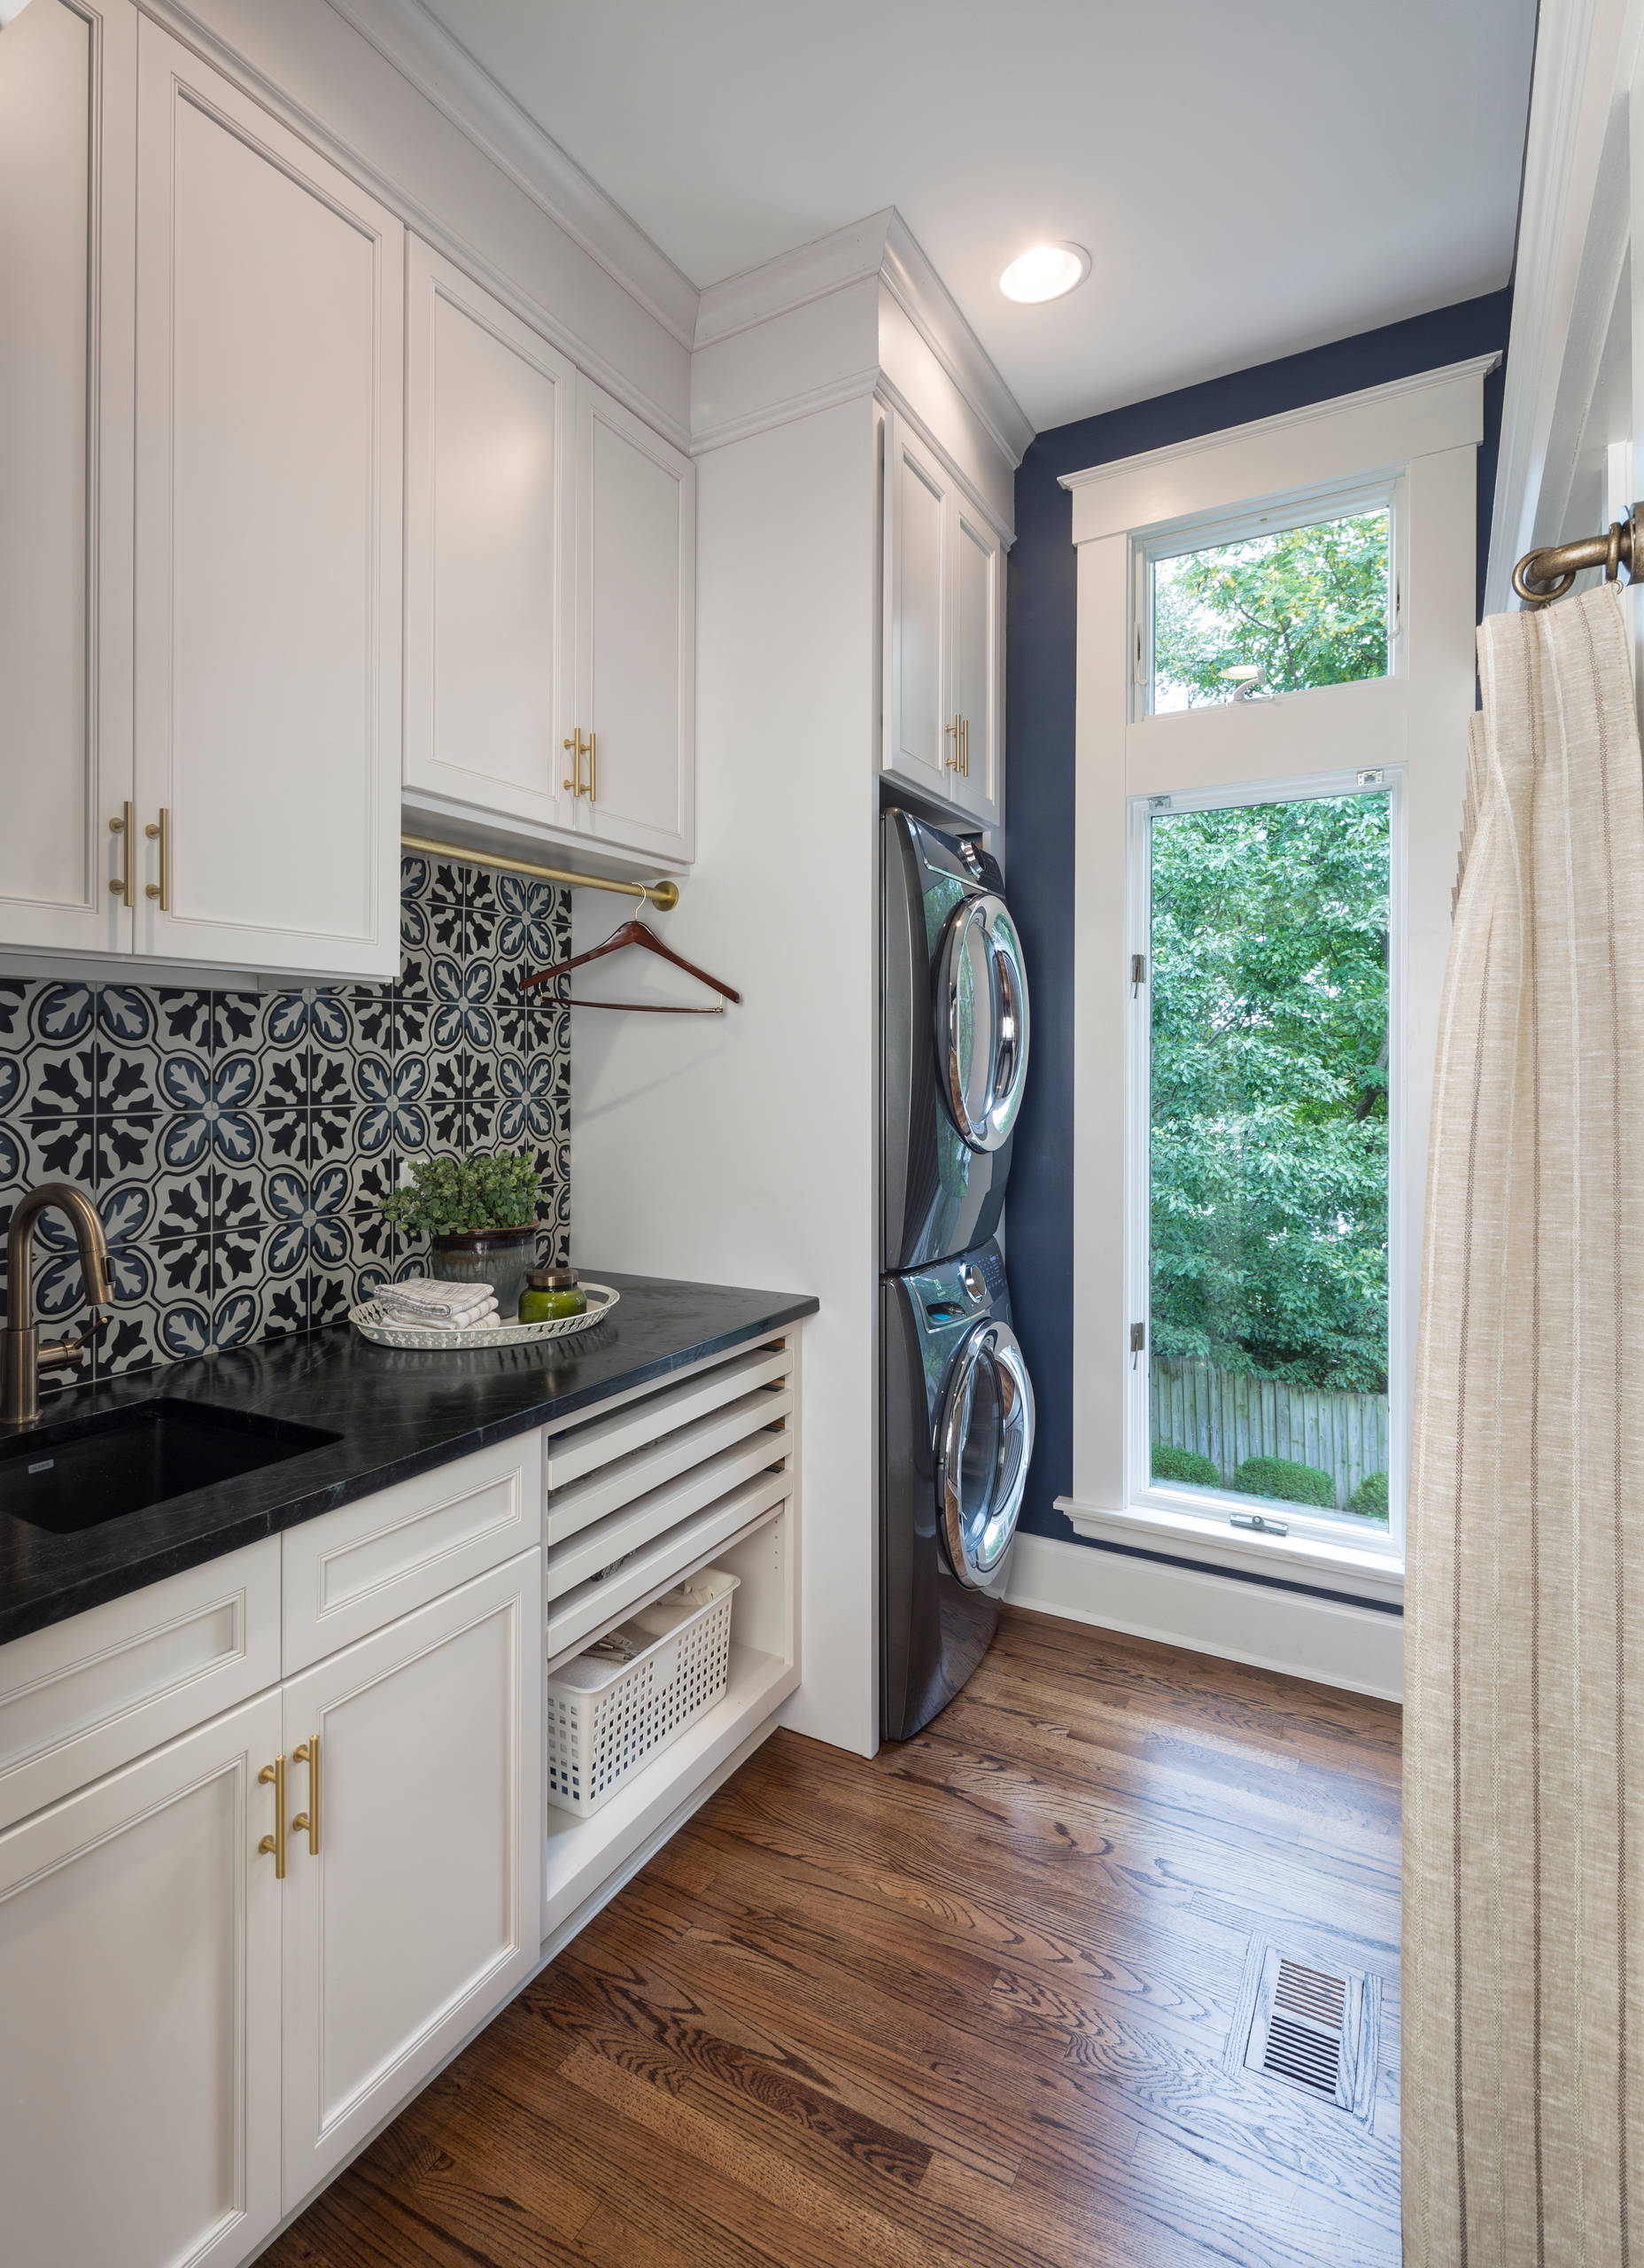 75 Beautiful Laundry Room With Blue Walls Pictures Ideas December 2020 Houzz